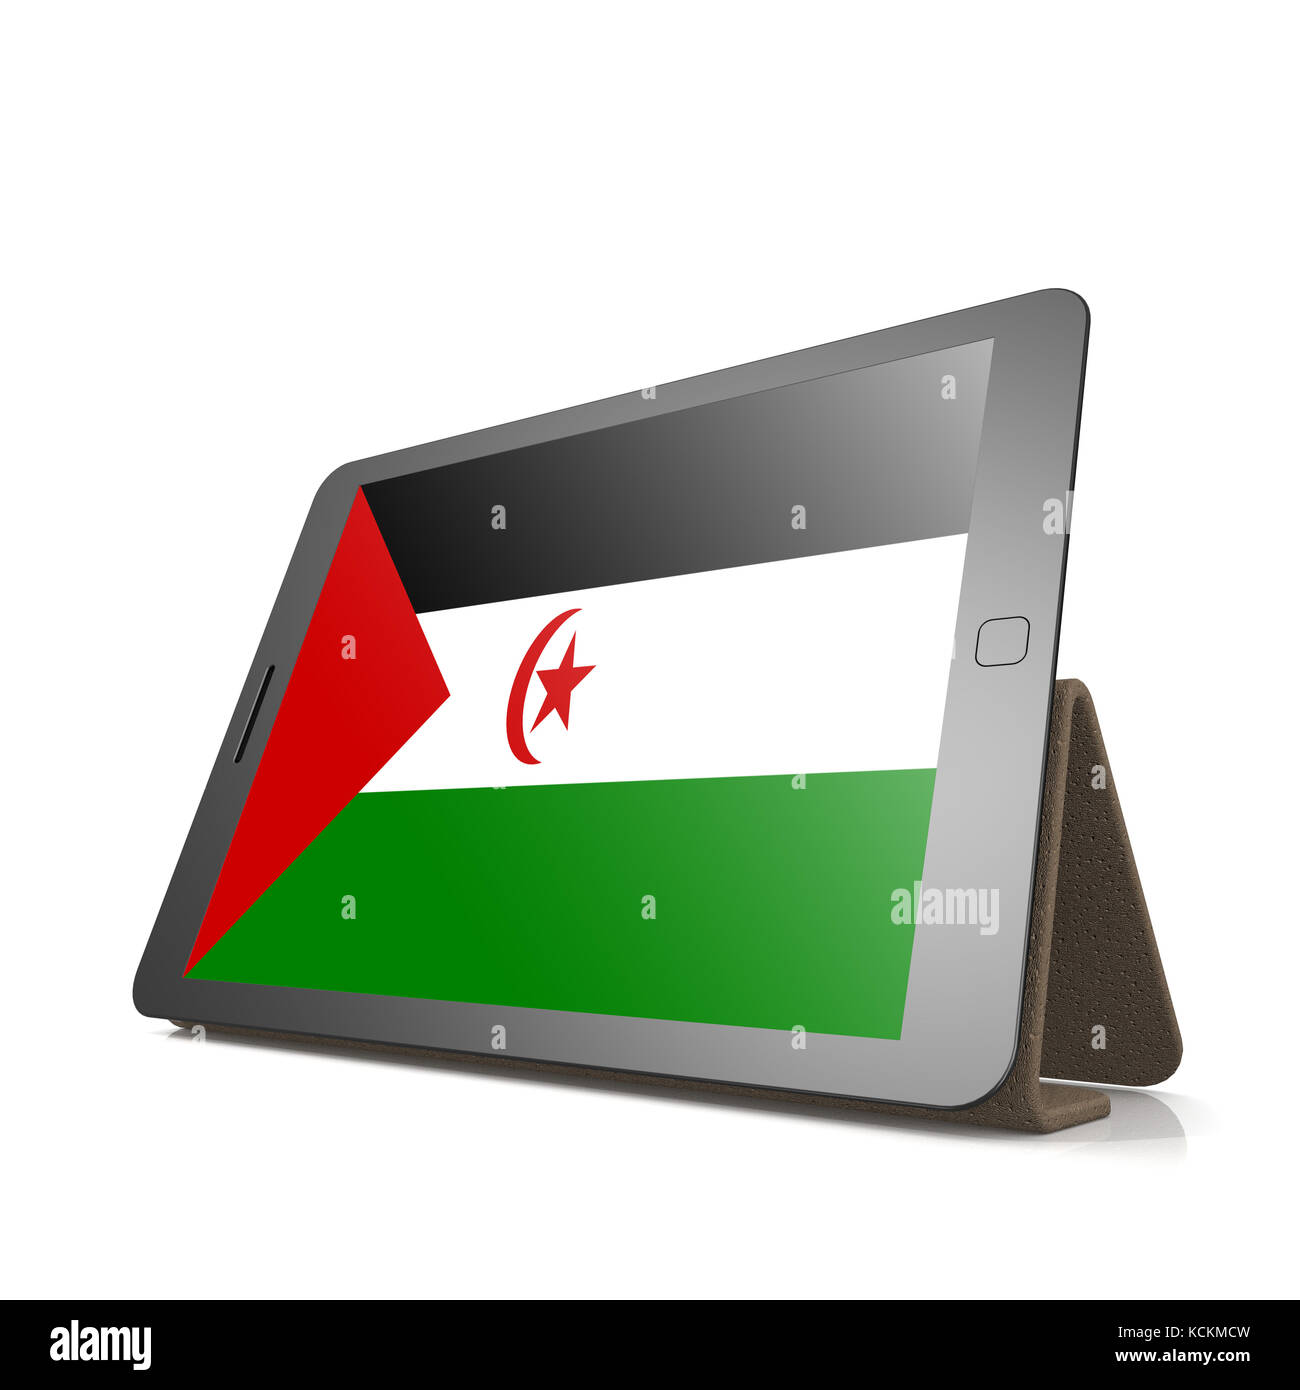 Tablet with Western Sahara flag image with hi-res rendered artwork that could be used for any graphic design. Stock Photo